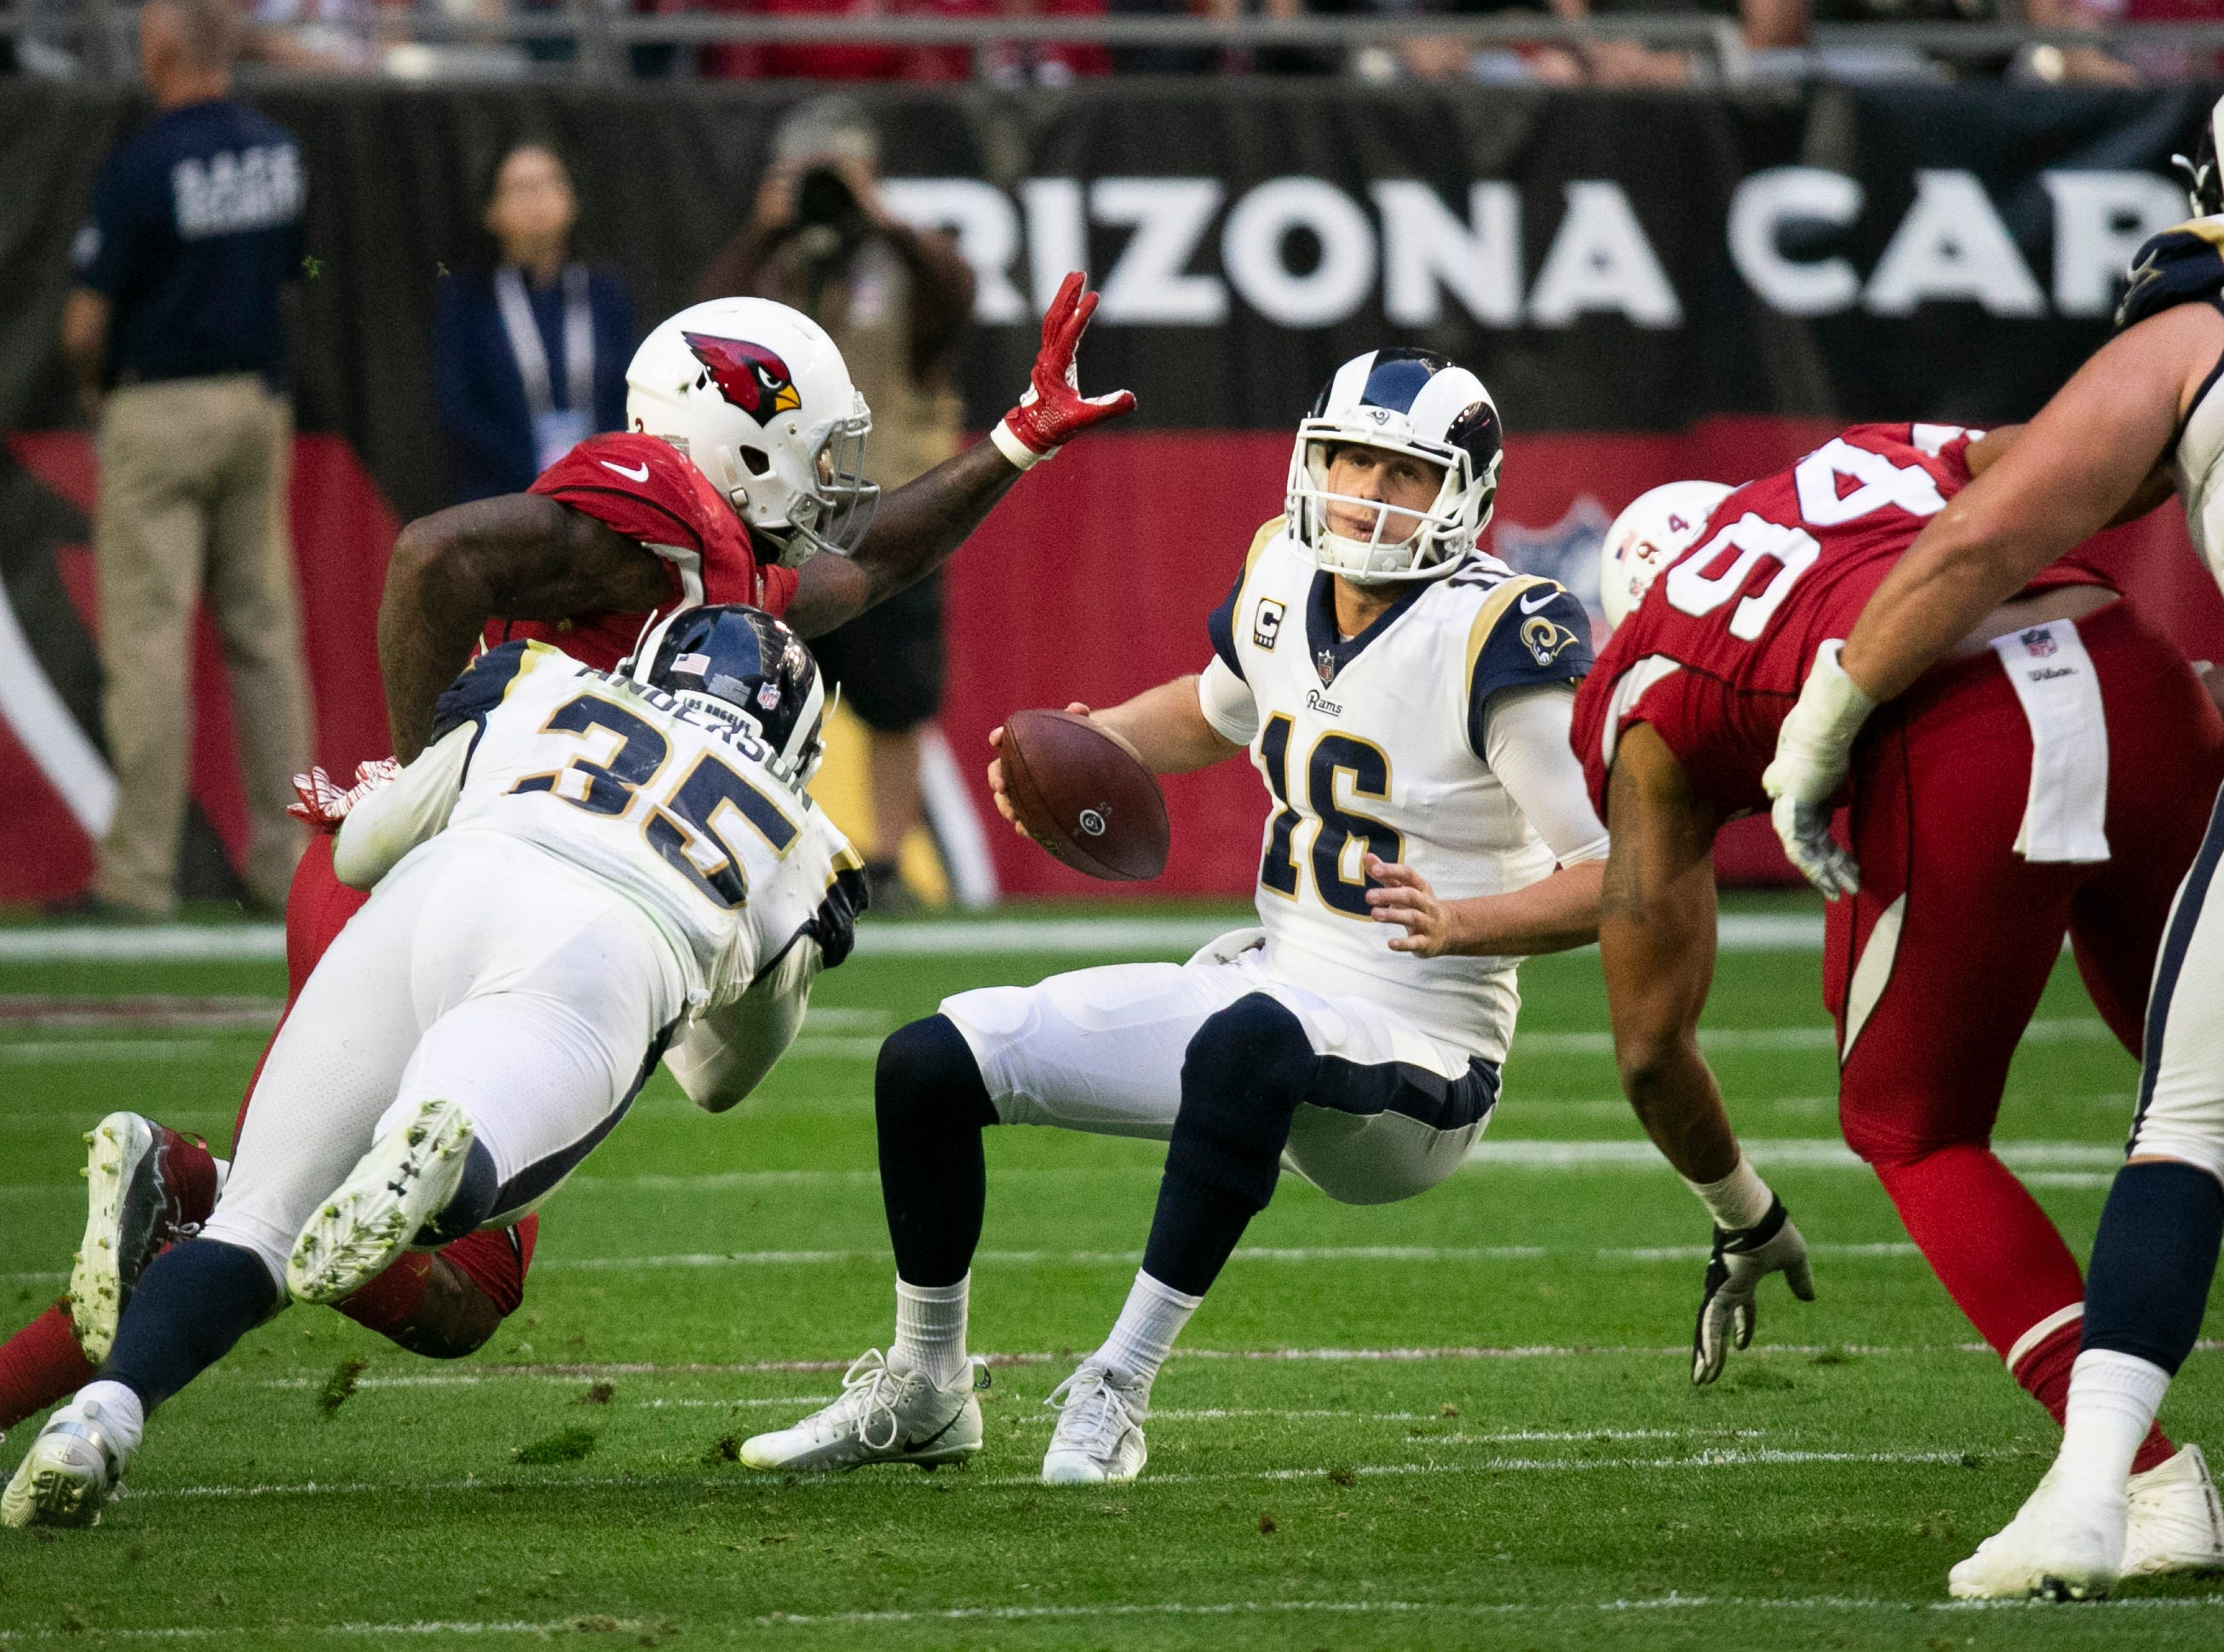 Rams quarterback Jared Goff stumbles as Cardinals linebacker Haason Reddick puts on the pressure during the fourth quarter of the NFL game at State Farm Stadium in Glendale on Sunday, December 23, 2018.